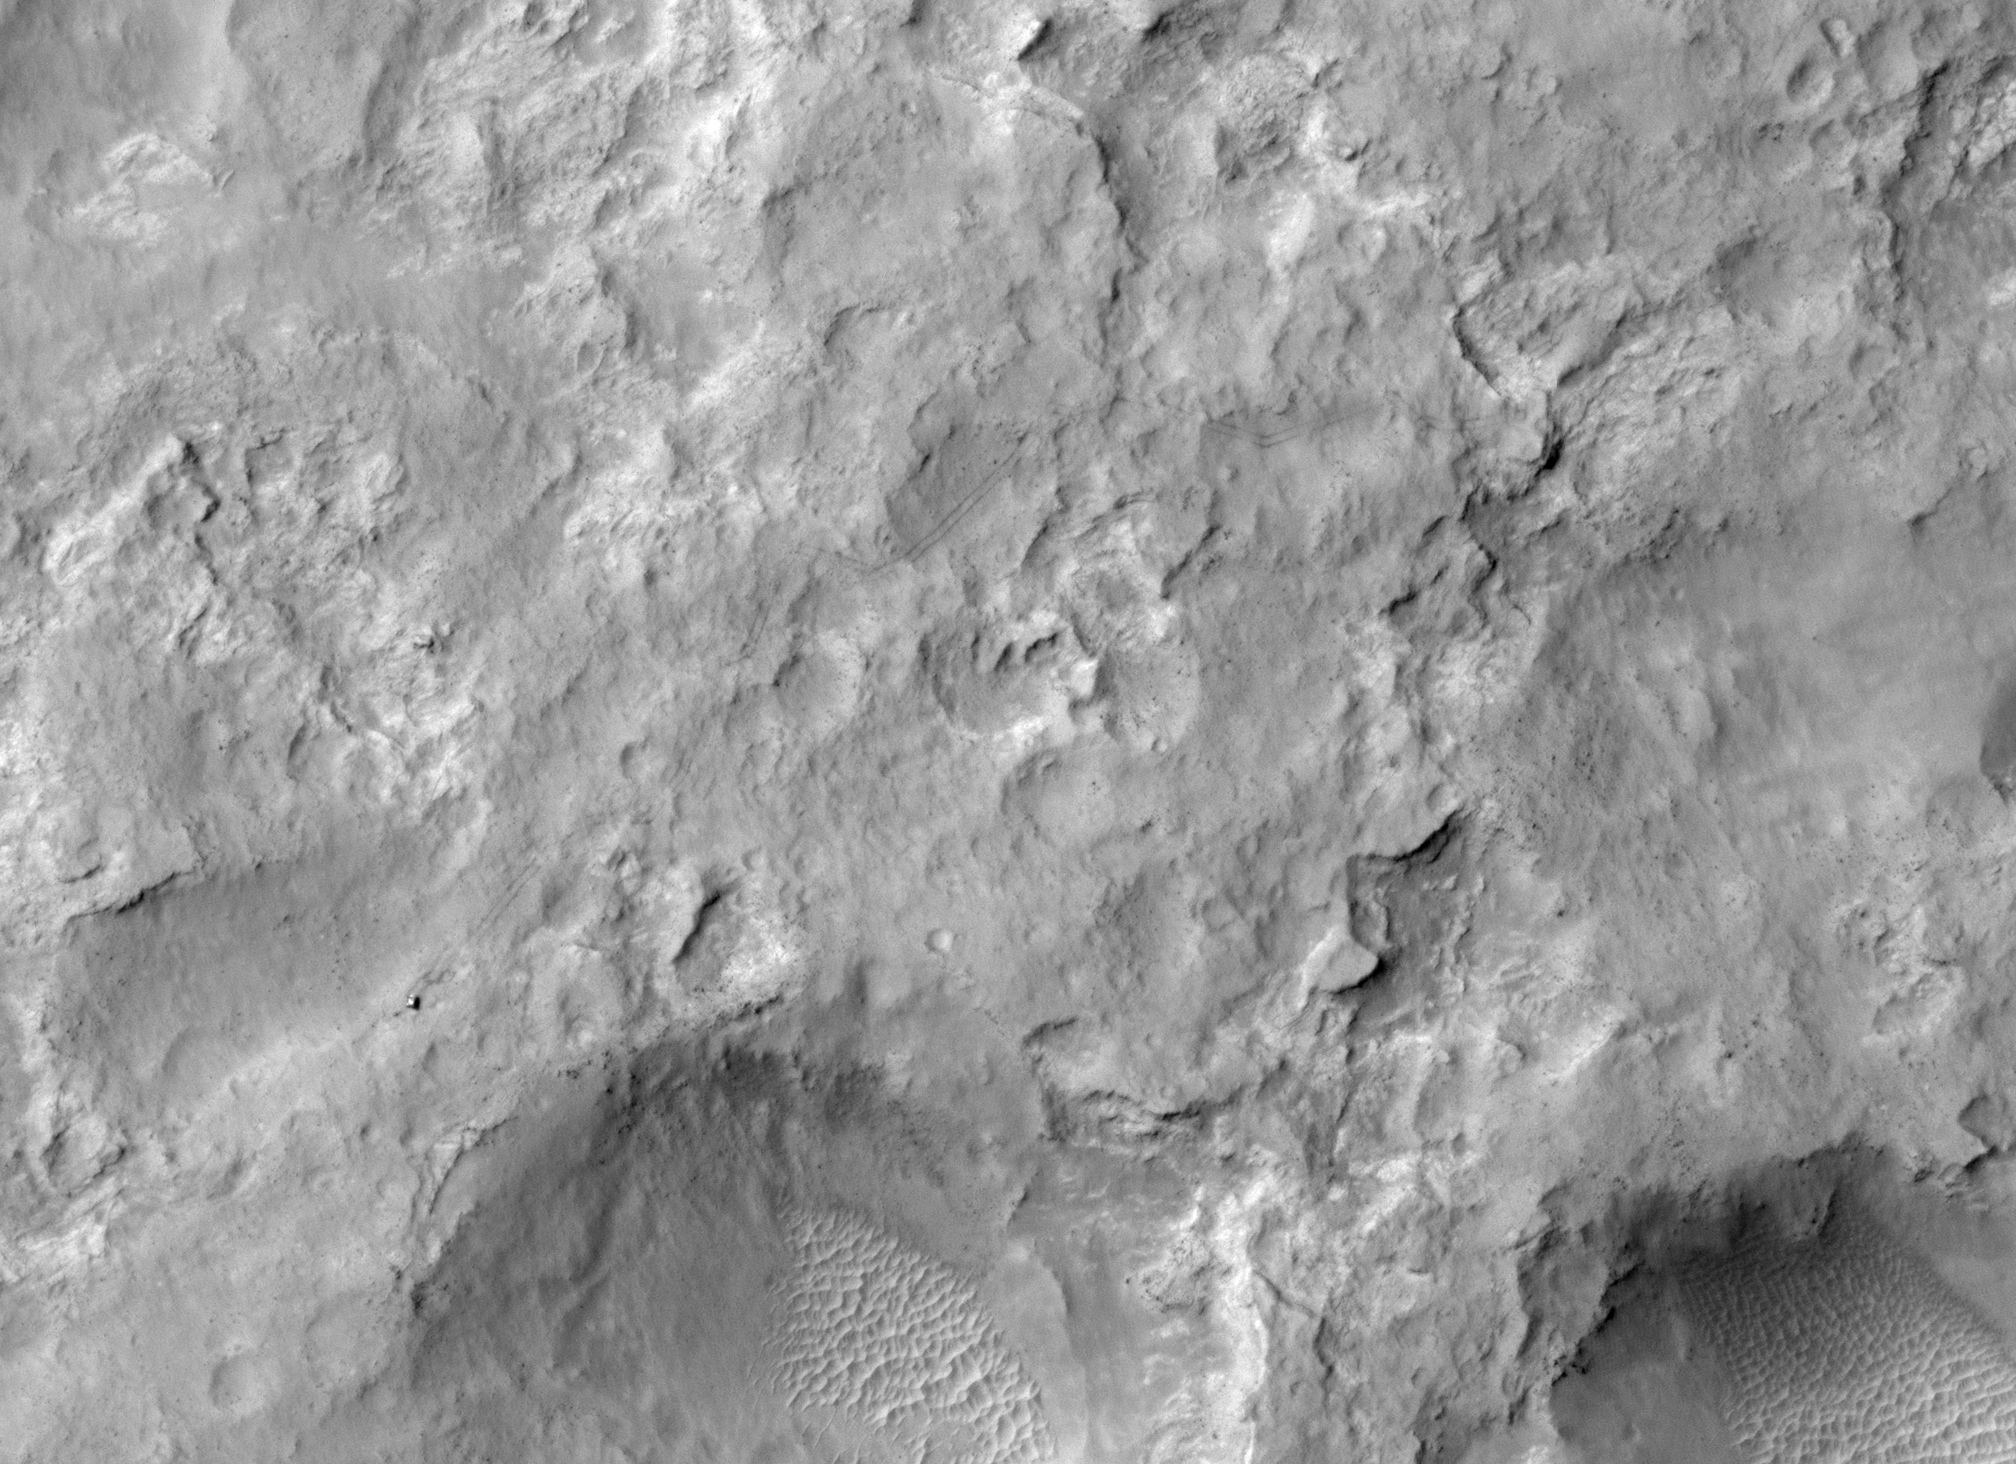 pia17755_hirise_of_rover_dec2013